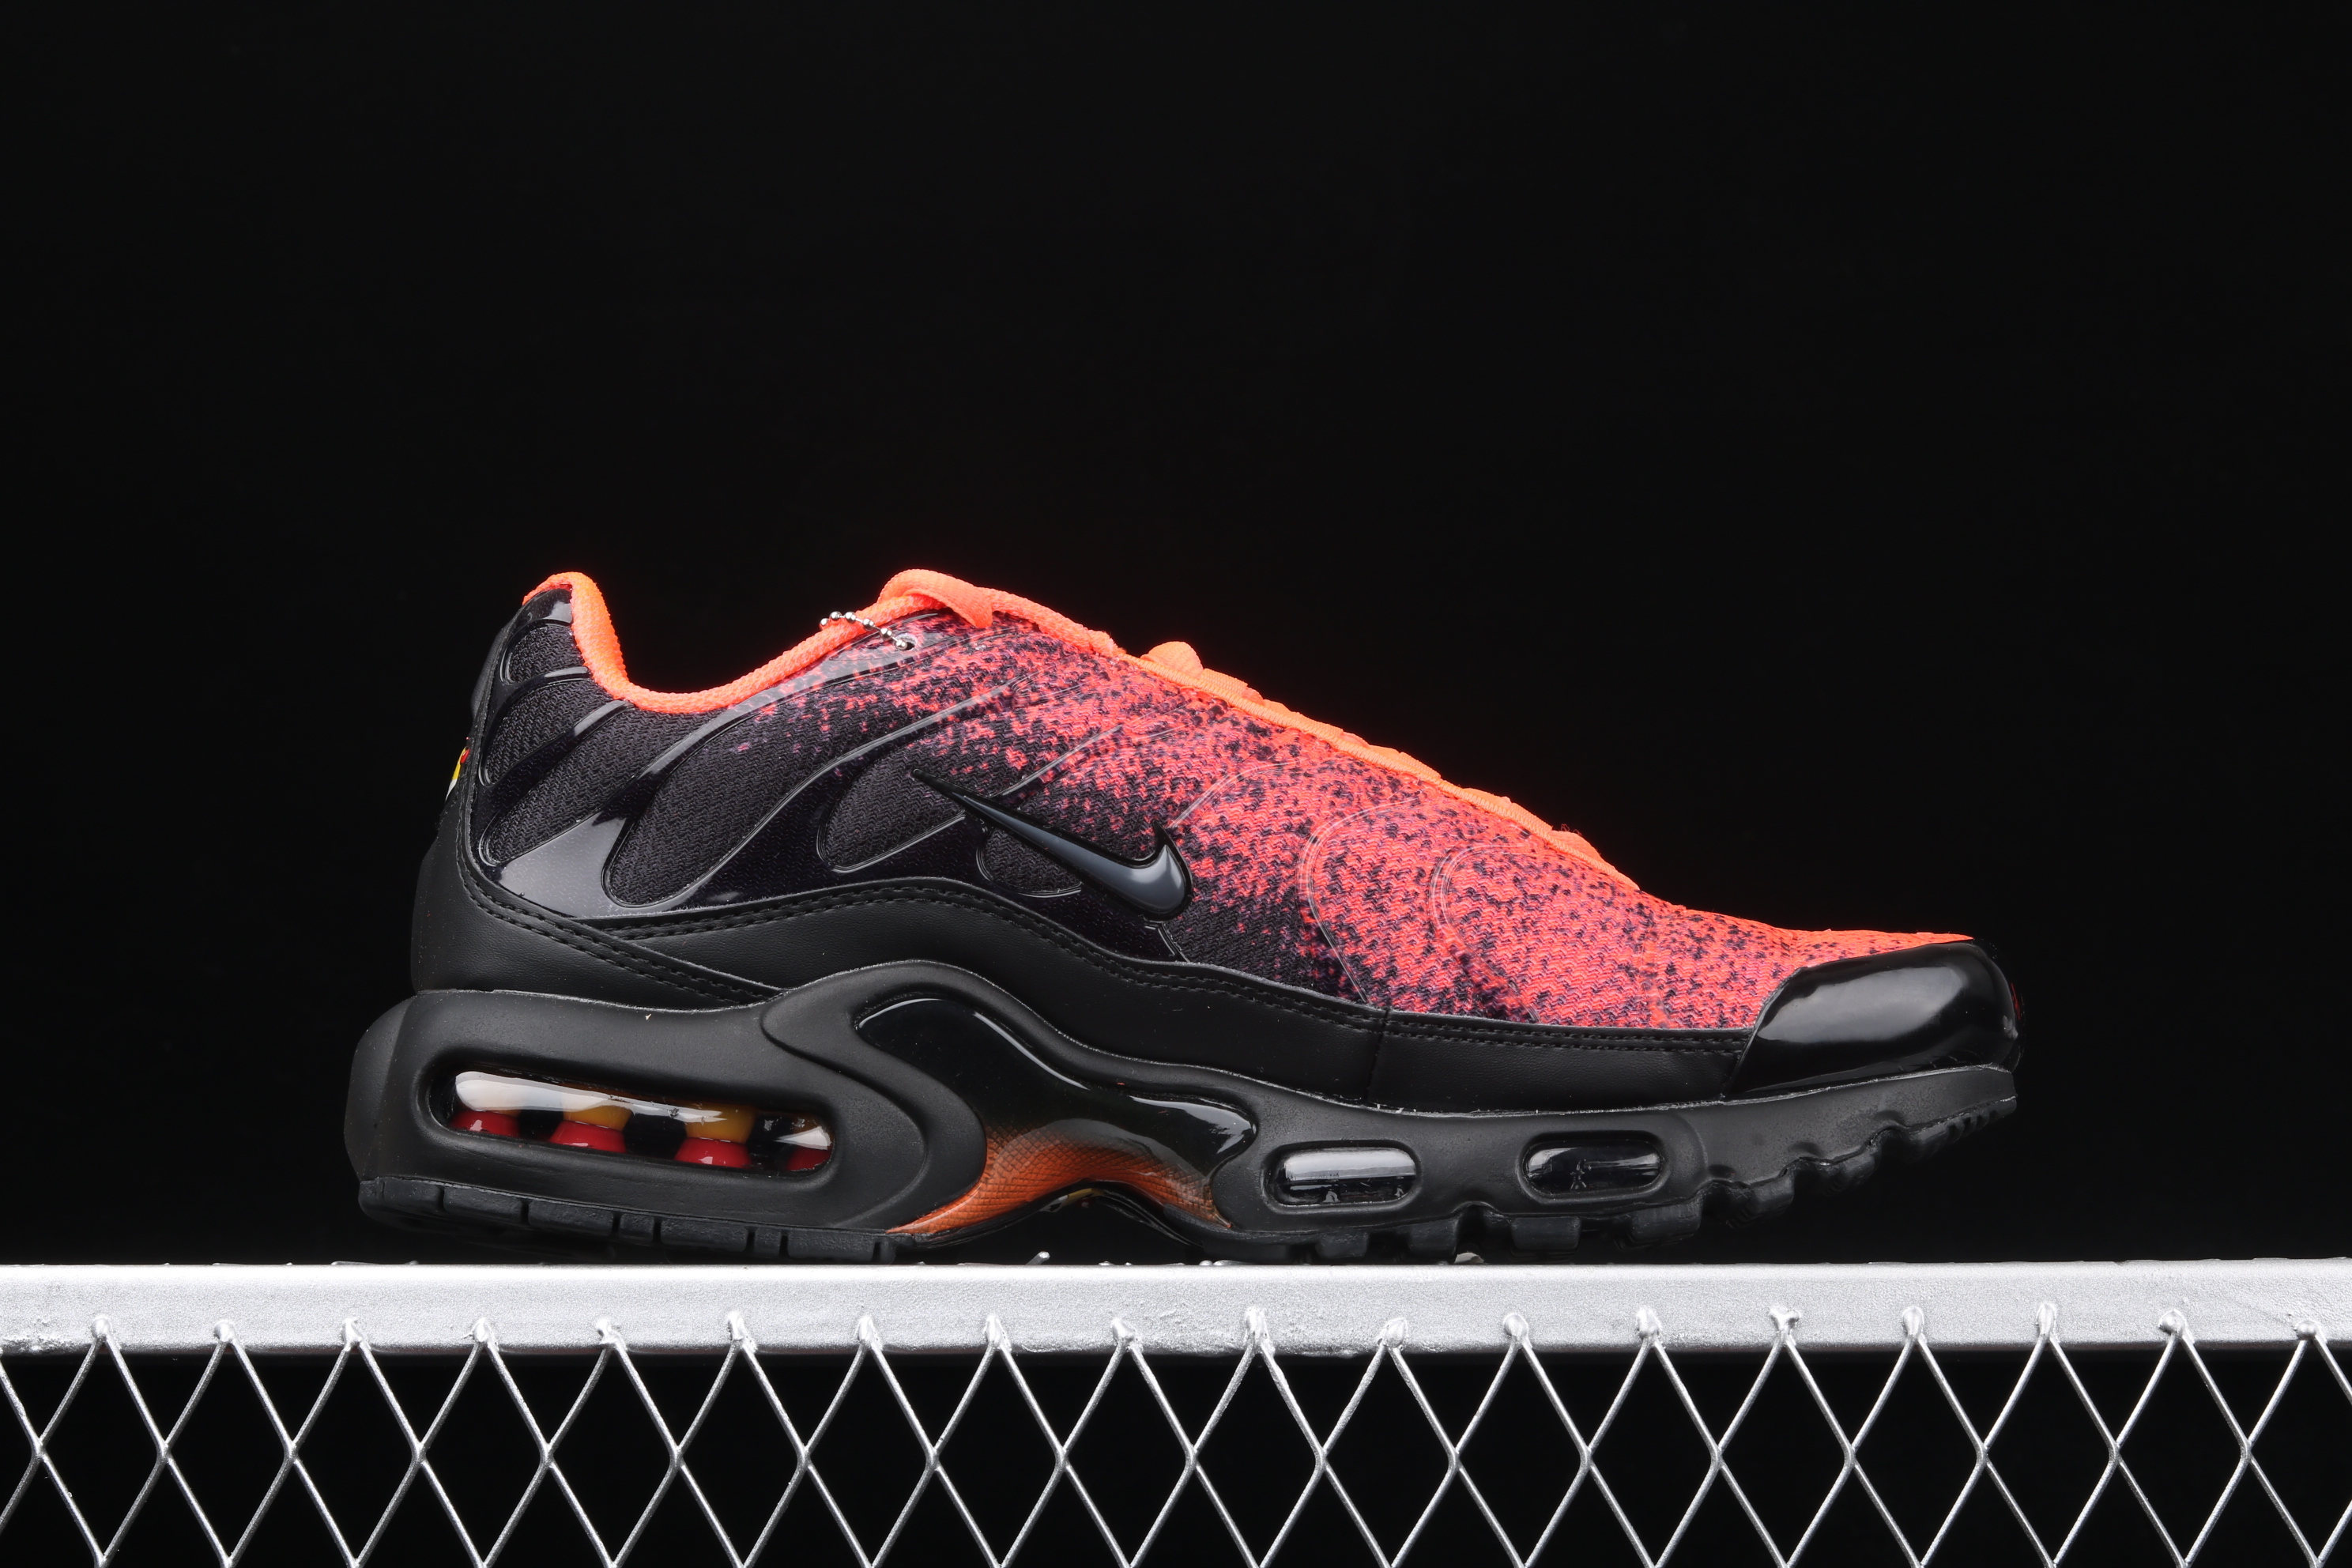 New Men Nike Air Max PLUS TXT Black Reddish Orange Running Shoes